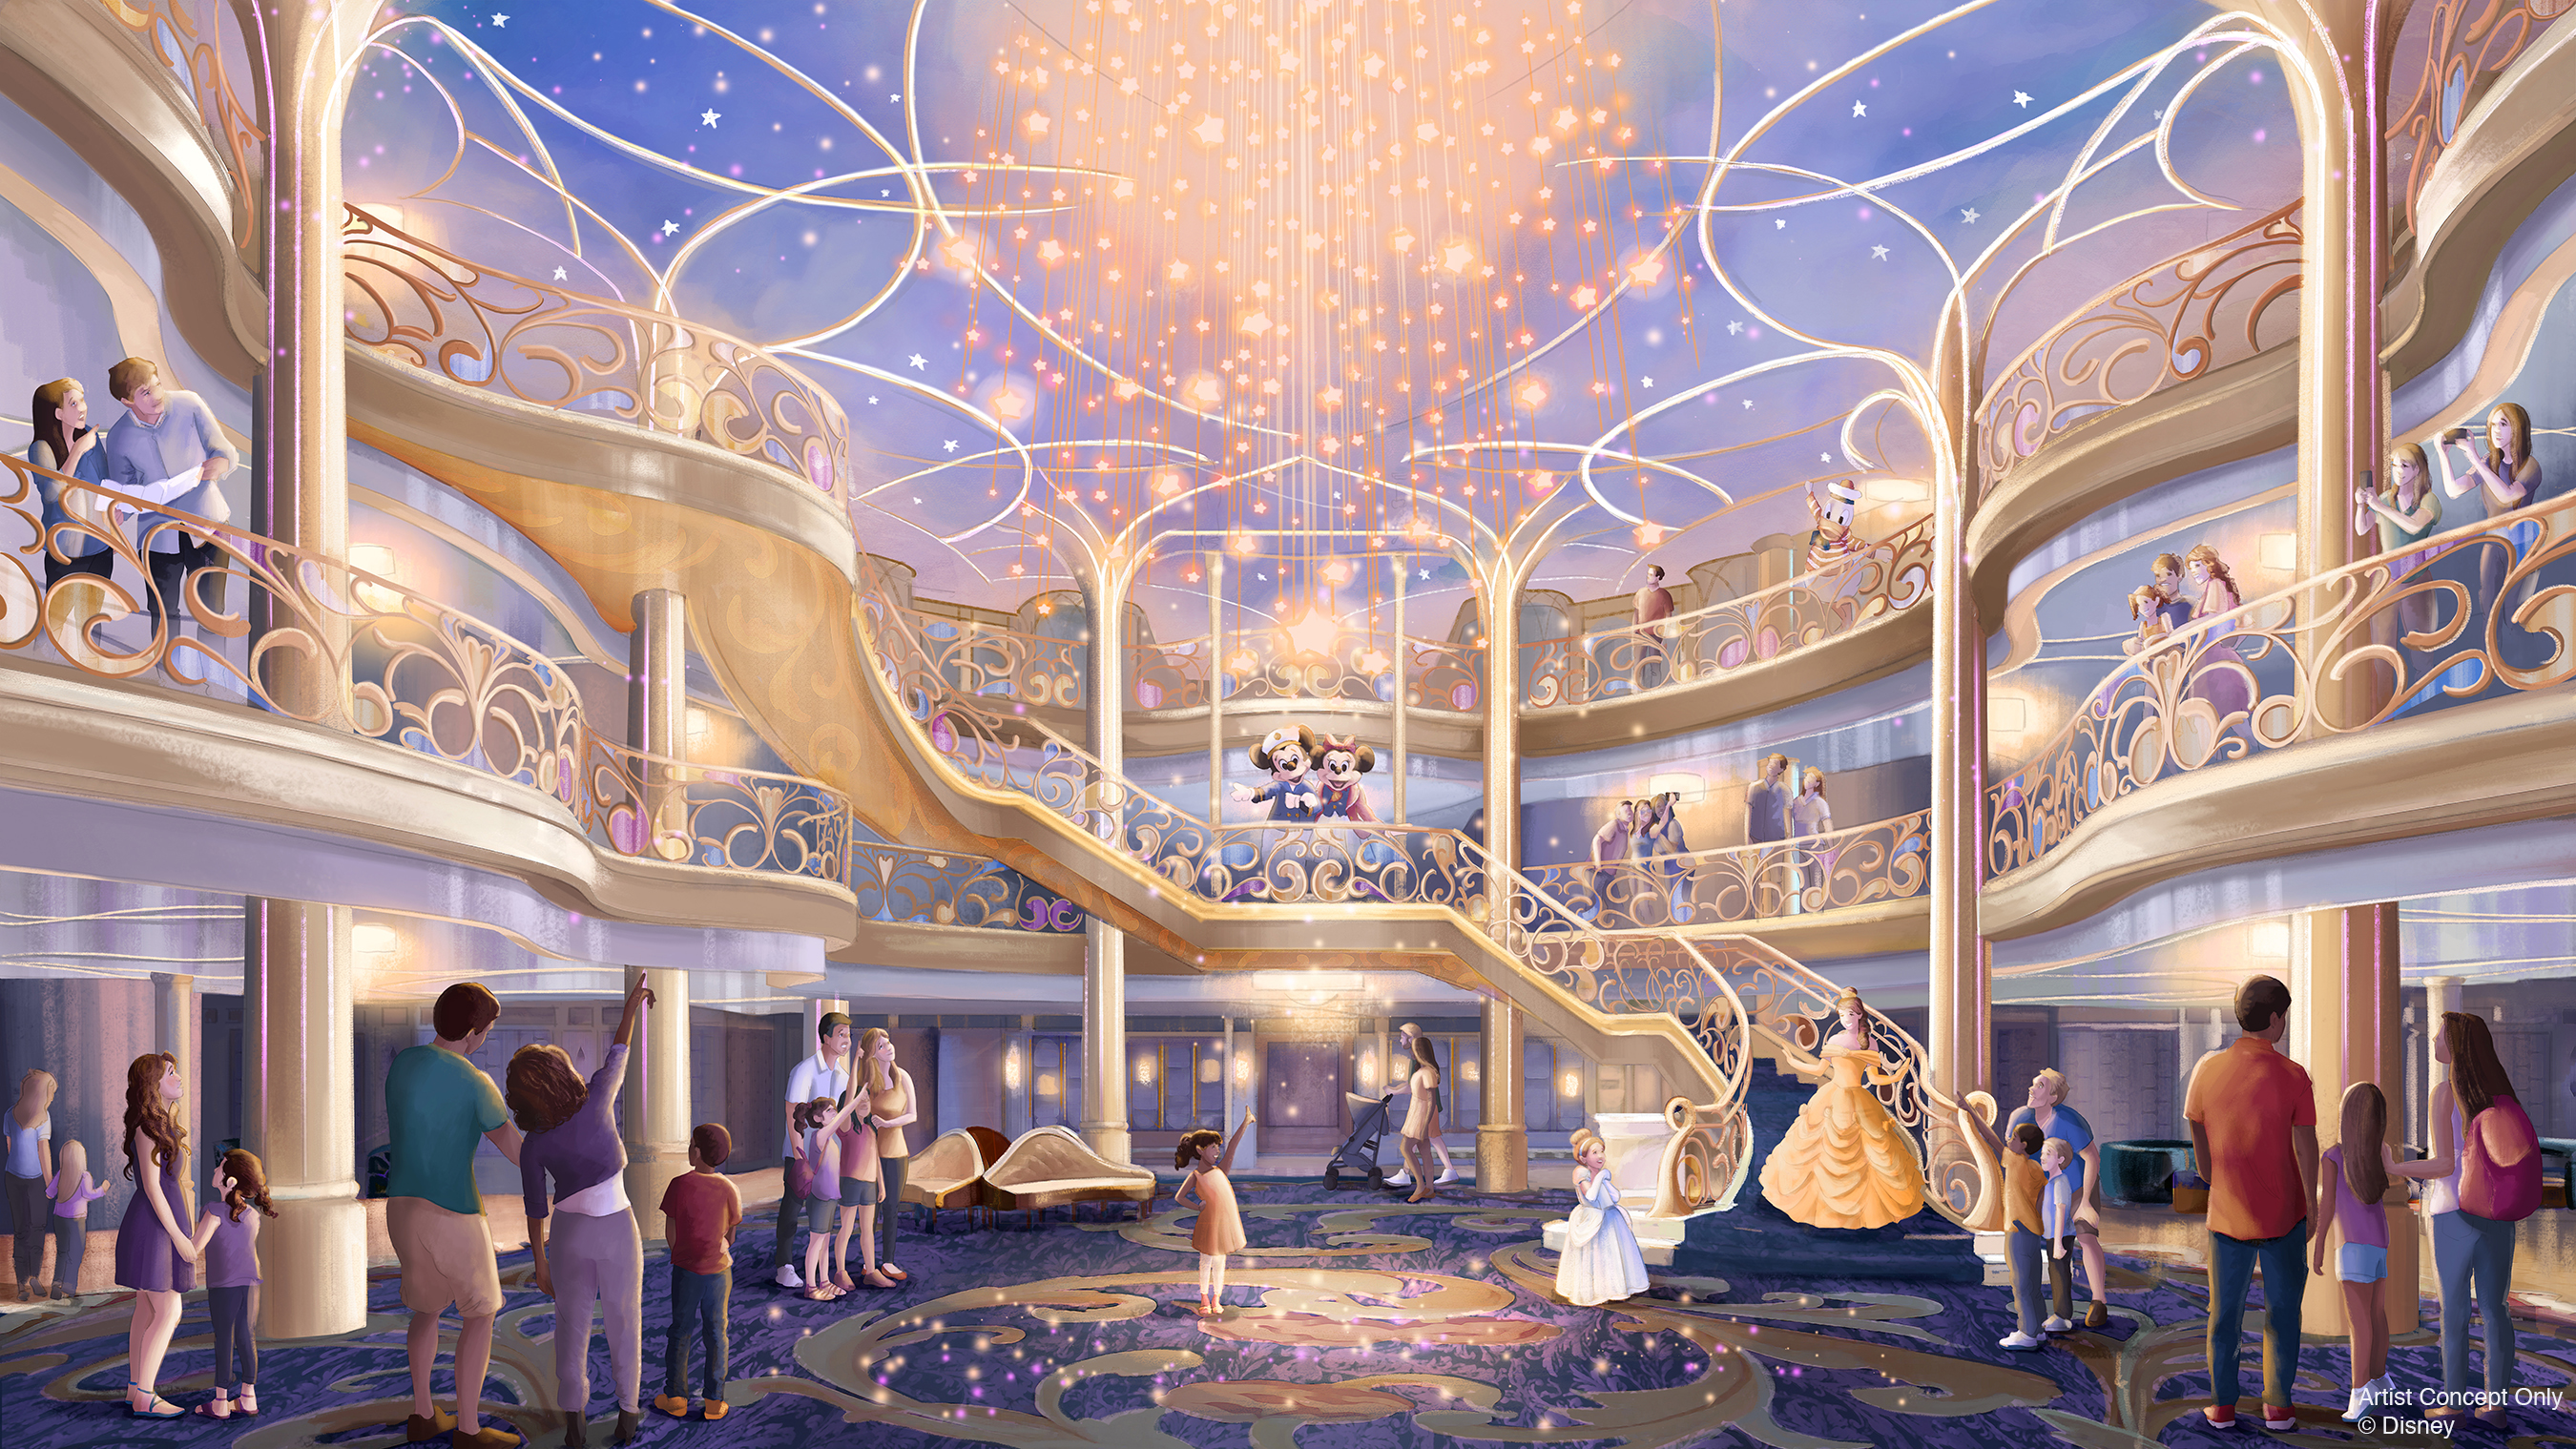 The Disney Wish will set sail in 2022